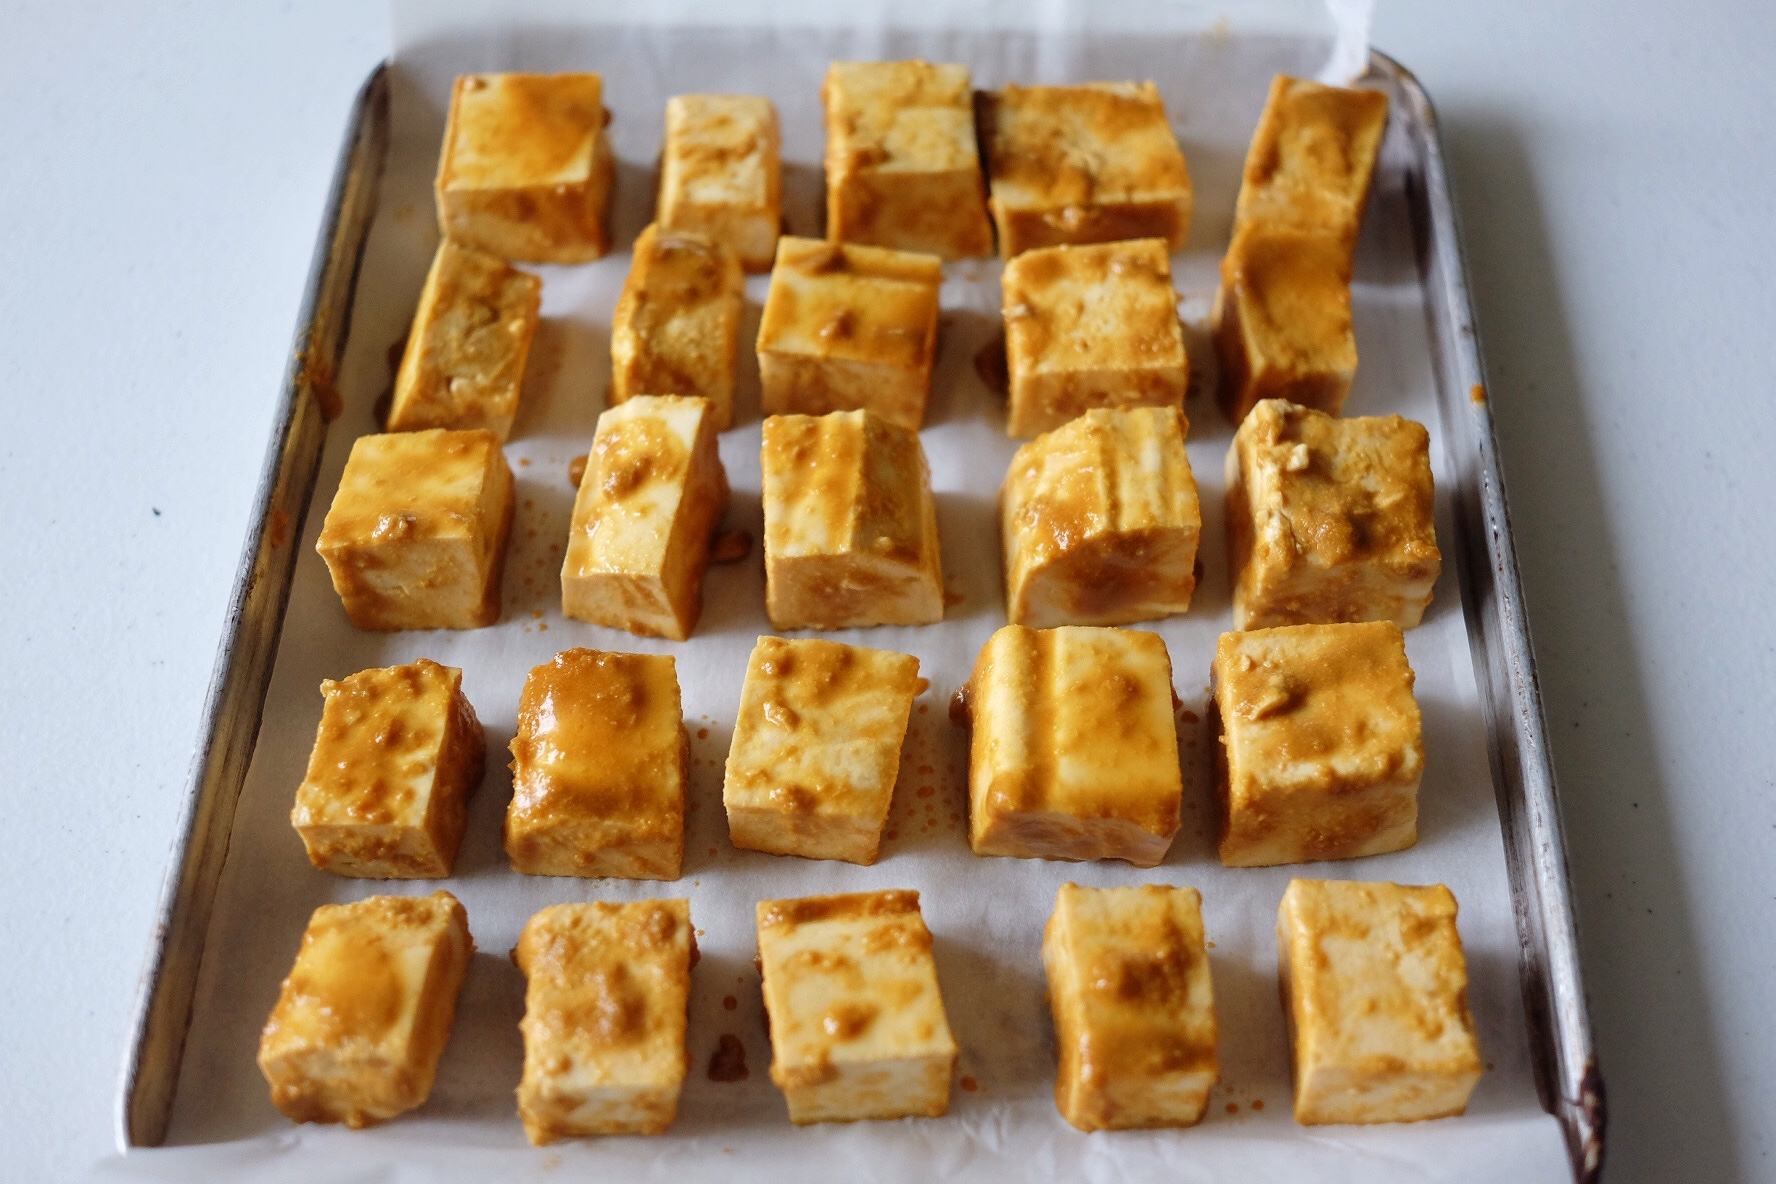 Baked Tofu with Cheesy Nutritional Yeast Recipe - The Superfood Grocer Philippines